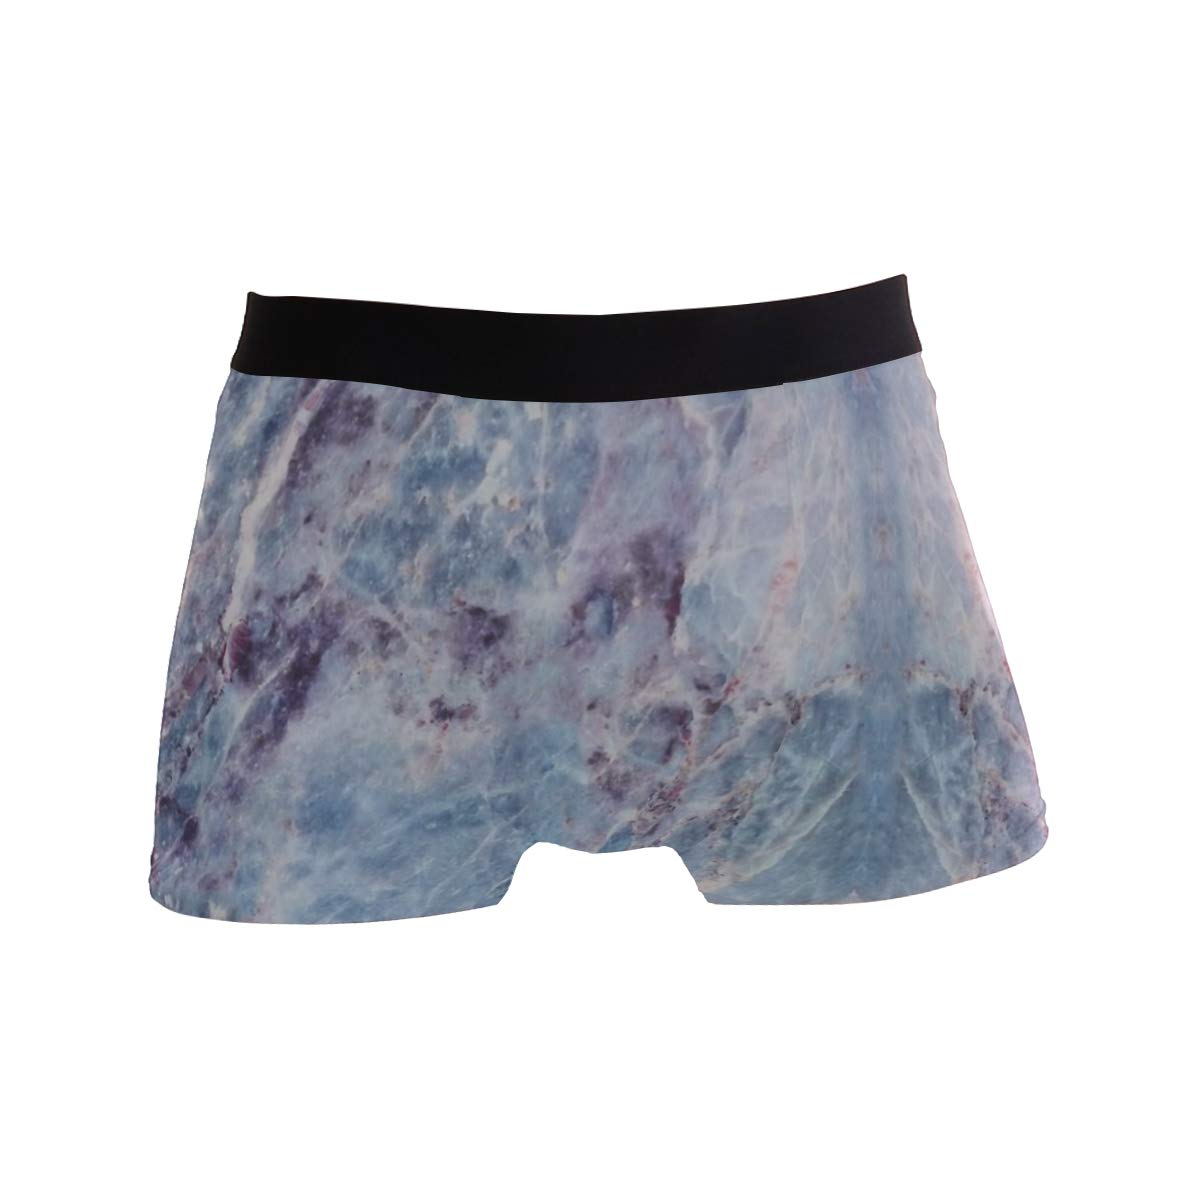 Toddy Astridd Blue Marble Galaxy Mens Sports Performance Shorts Underwear 2 Pack